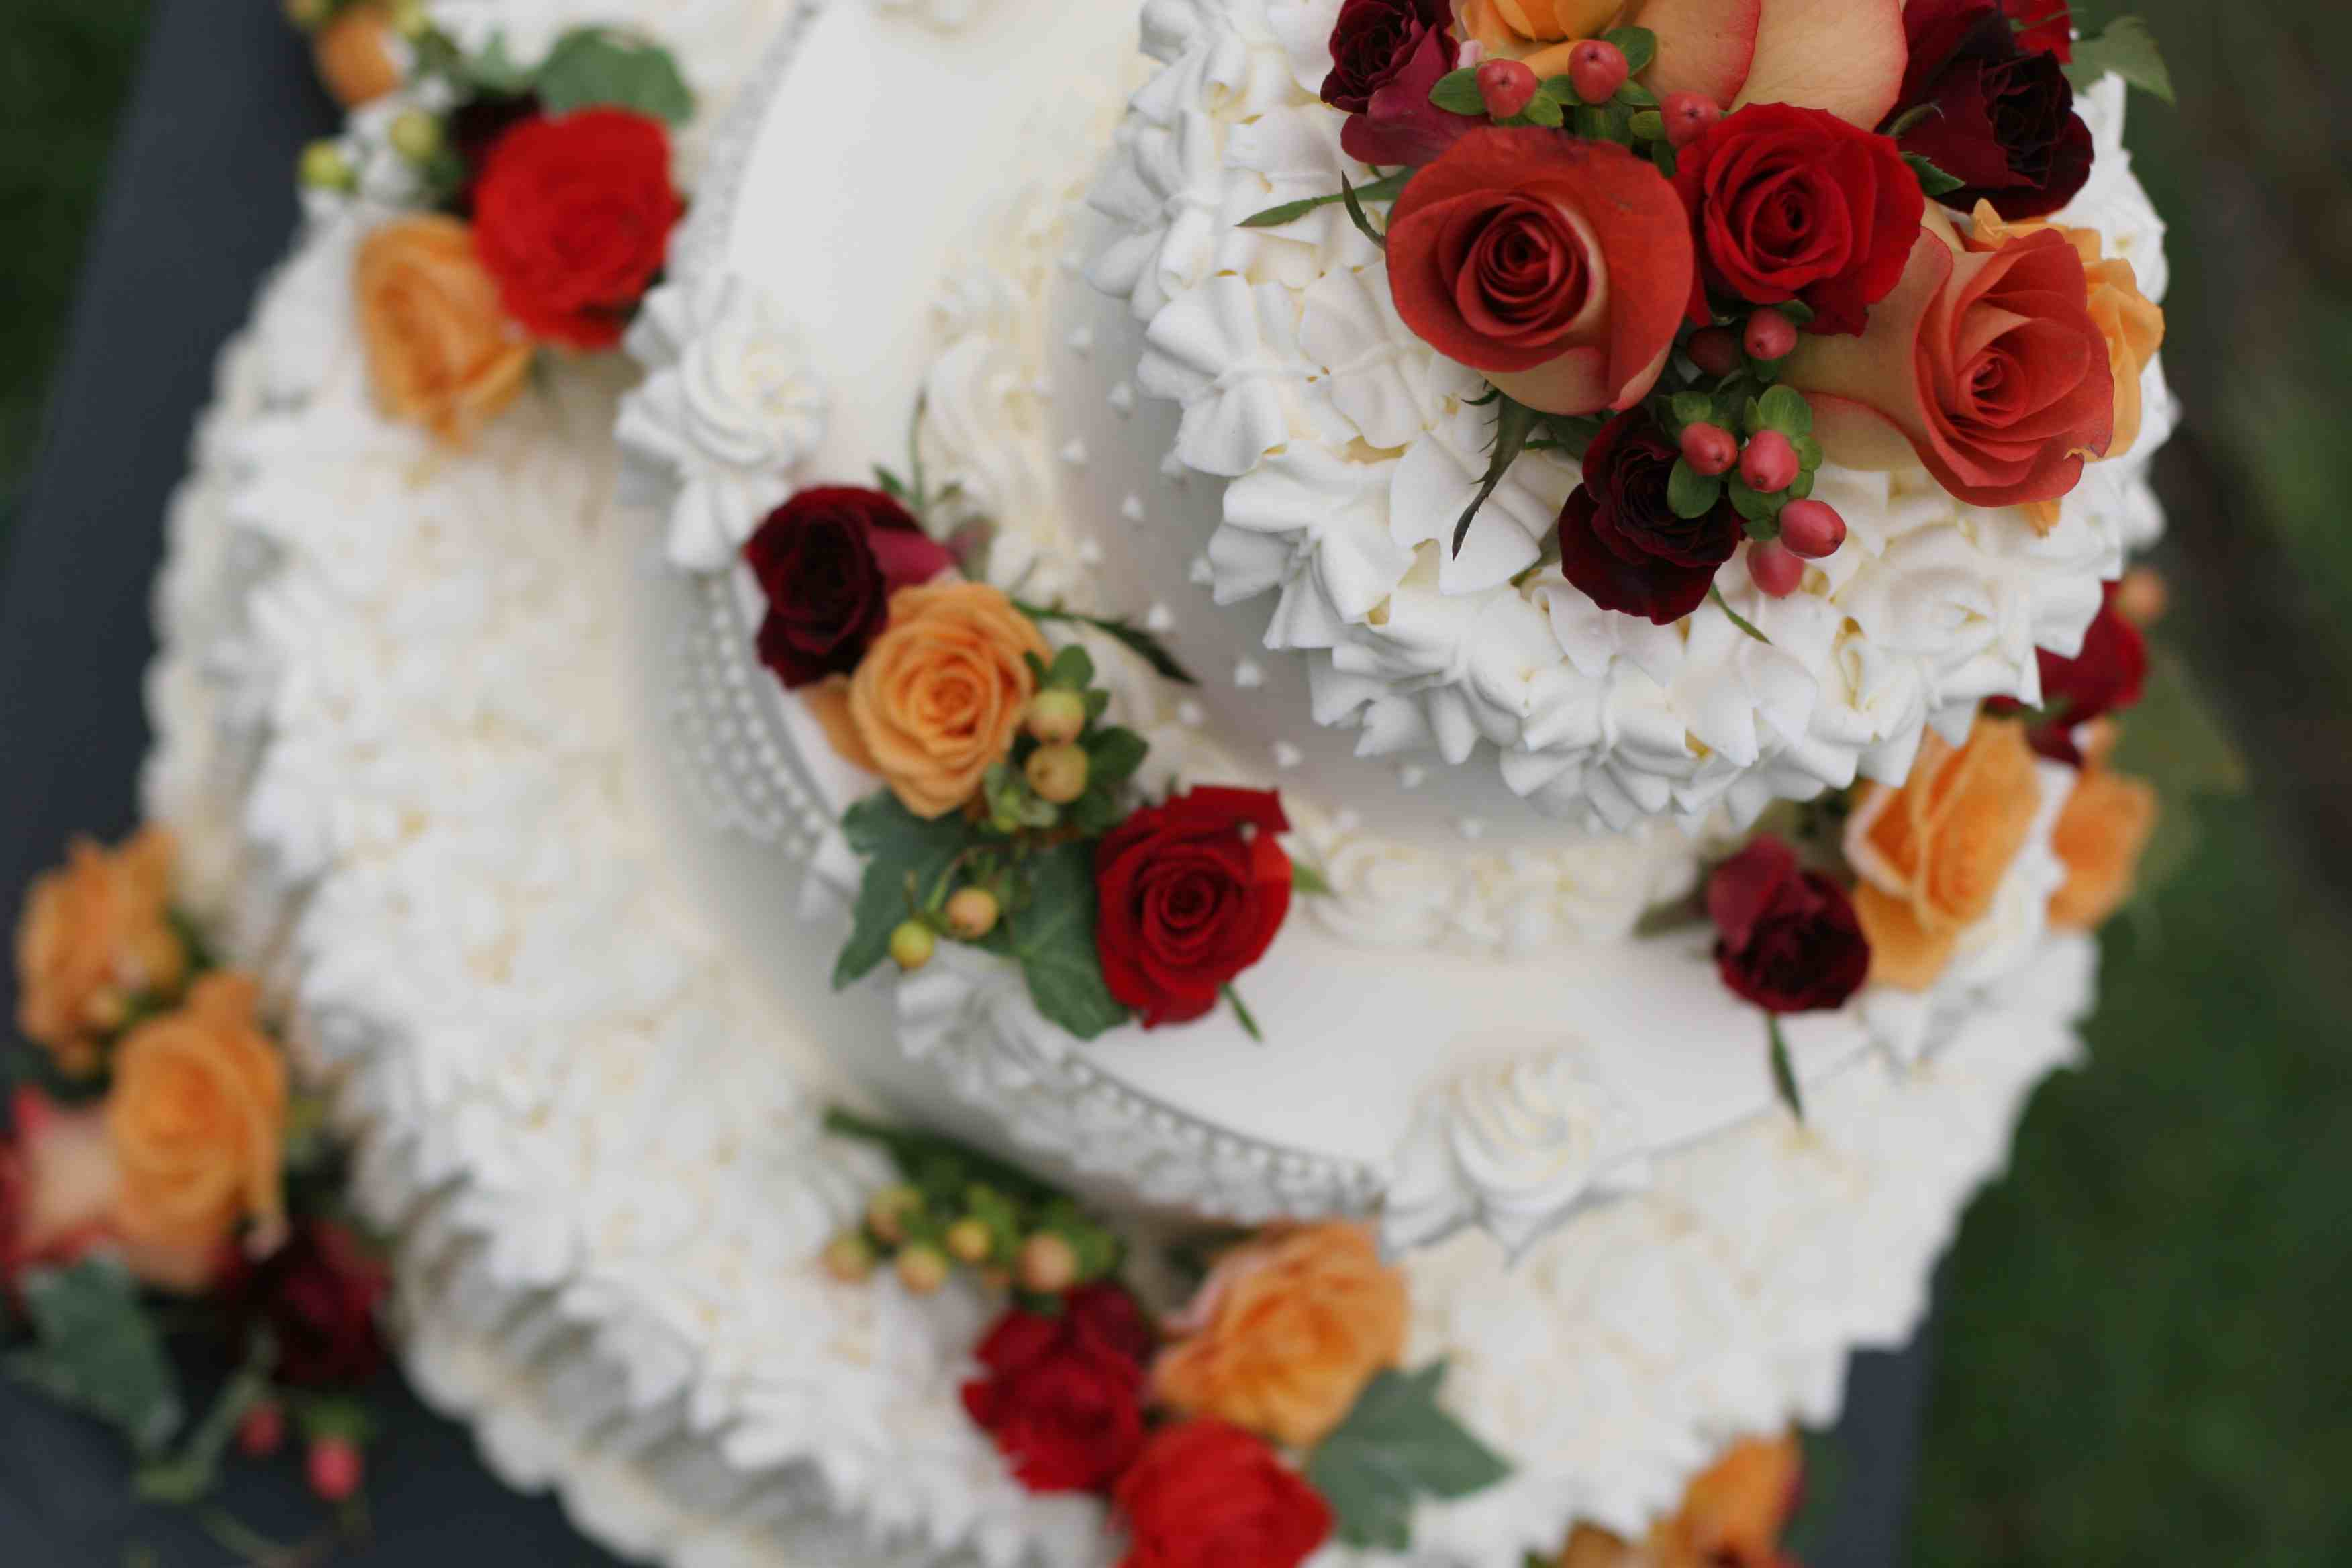 Wedding Cake with Red and Orange Roses